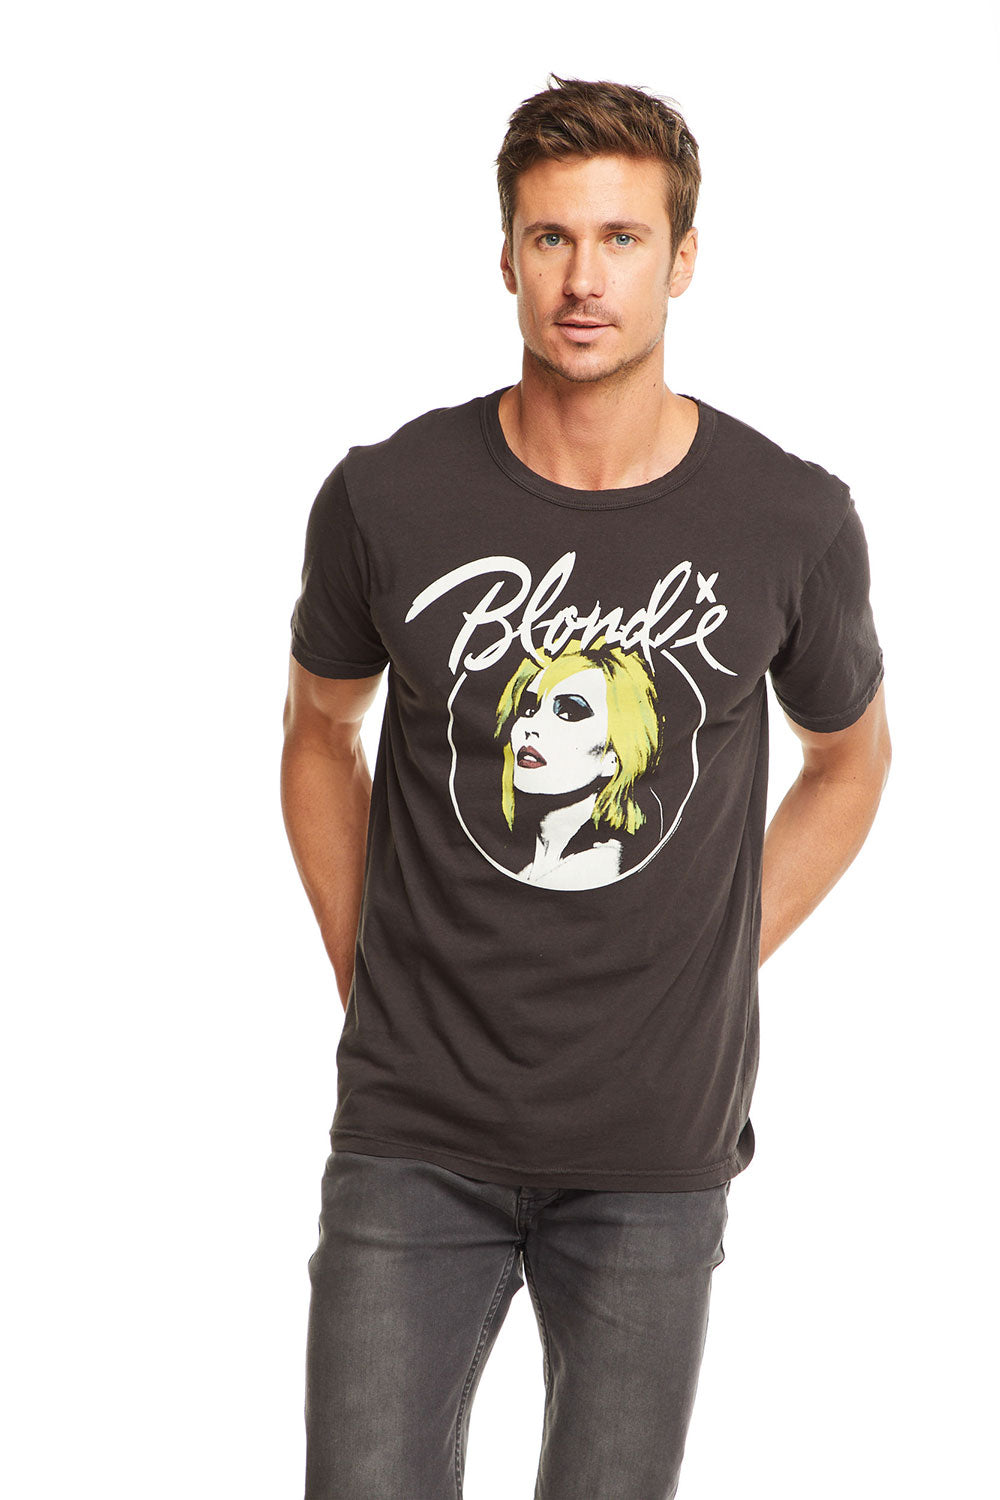 Blondie - Classic Blondie, MENS, chaserbrand.com,chaser clothing,chaser apparel,chaser los angeles